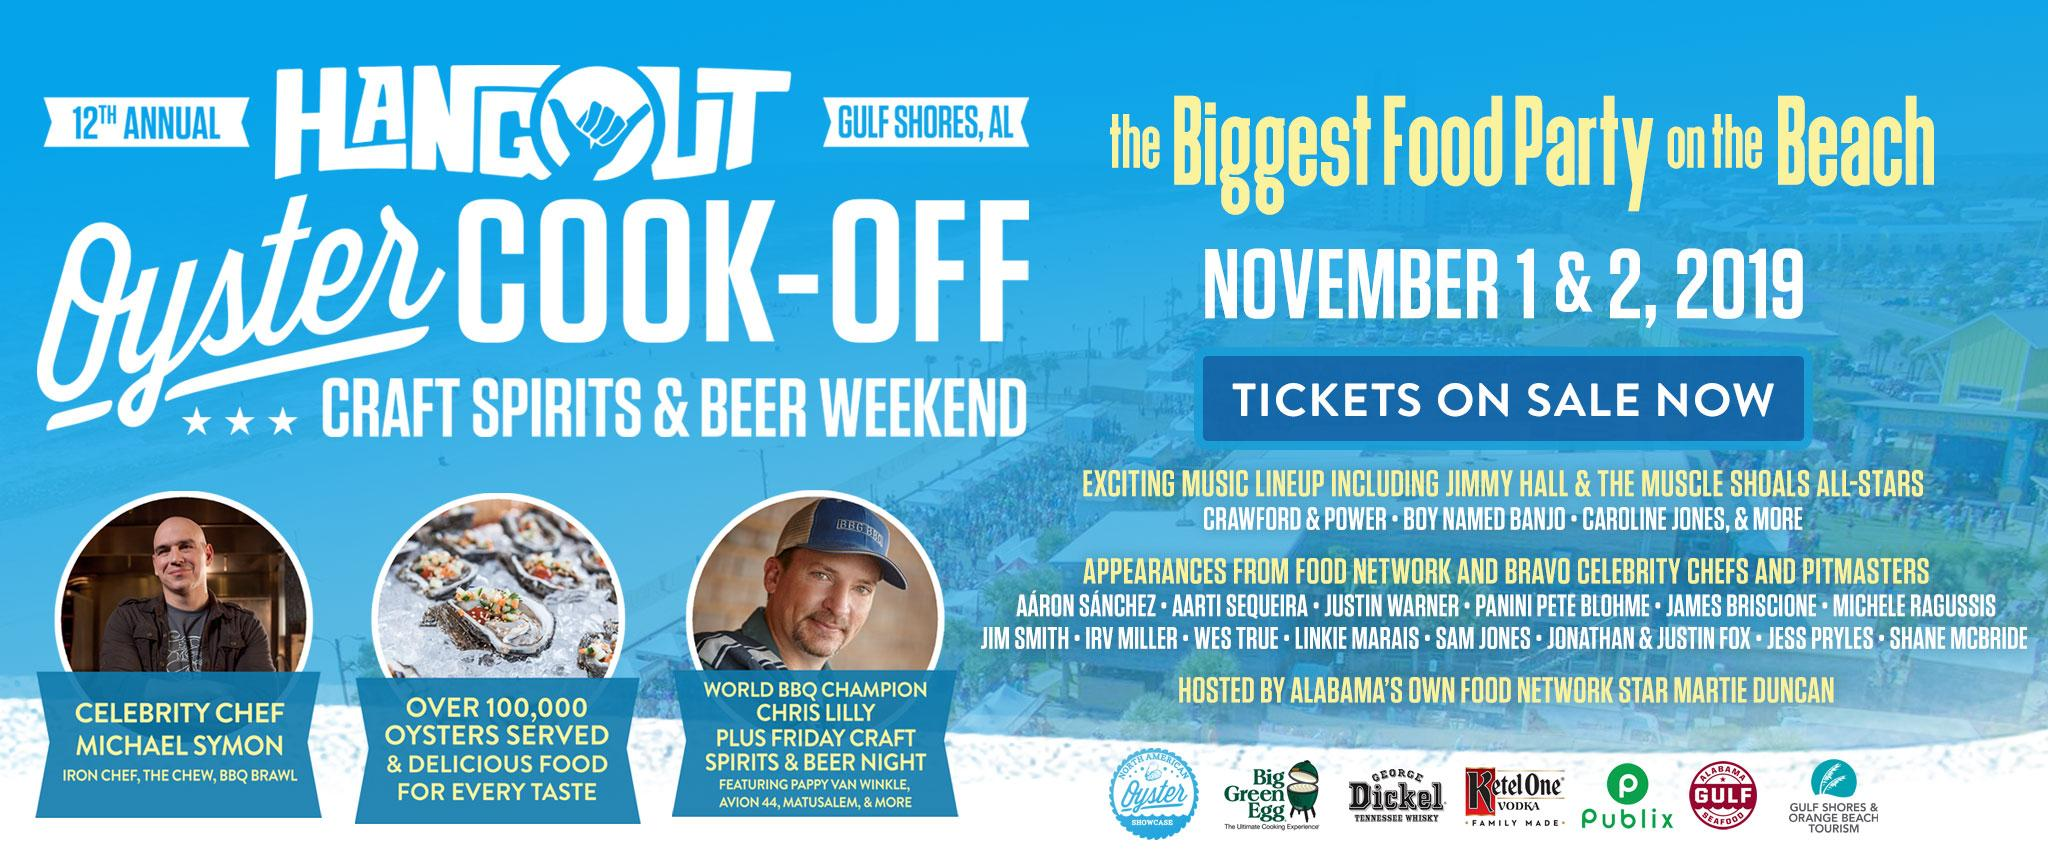 Hangout Oyster Cookoff Gulf Shores AL